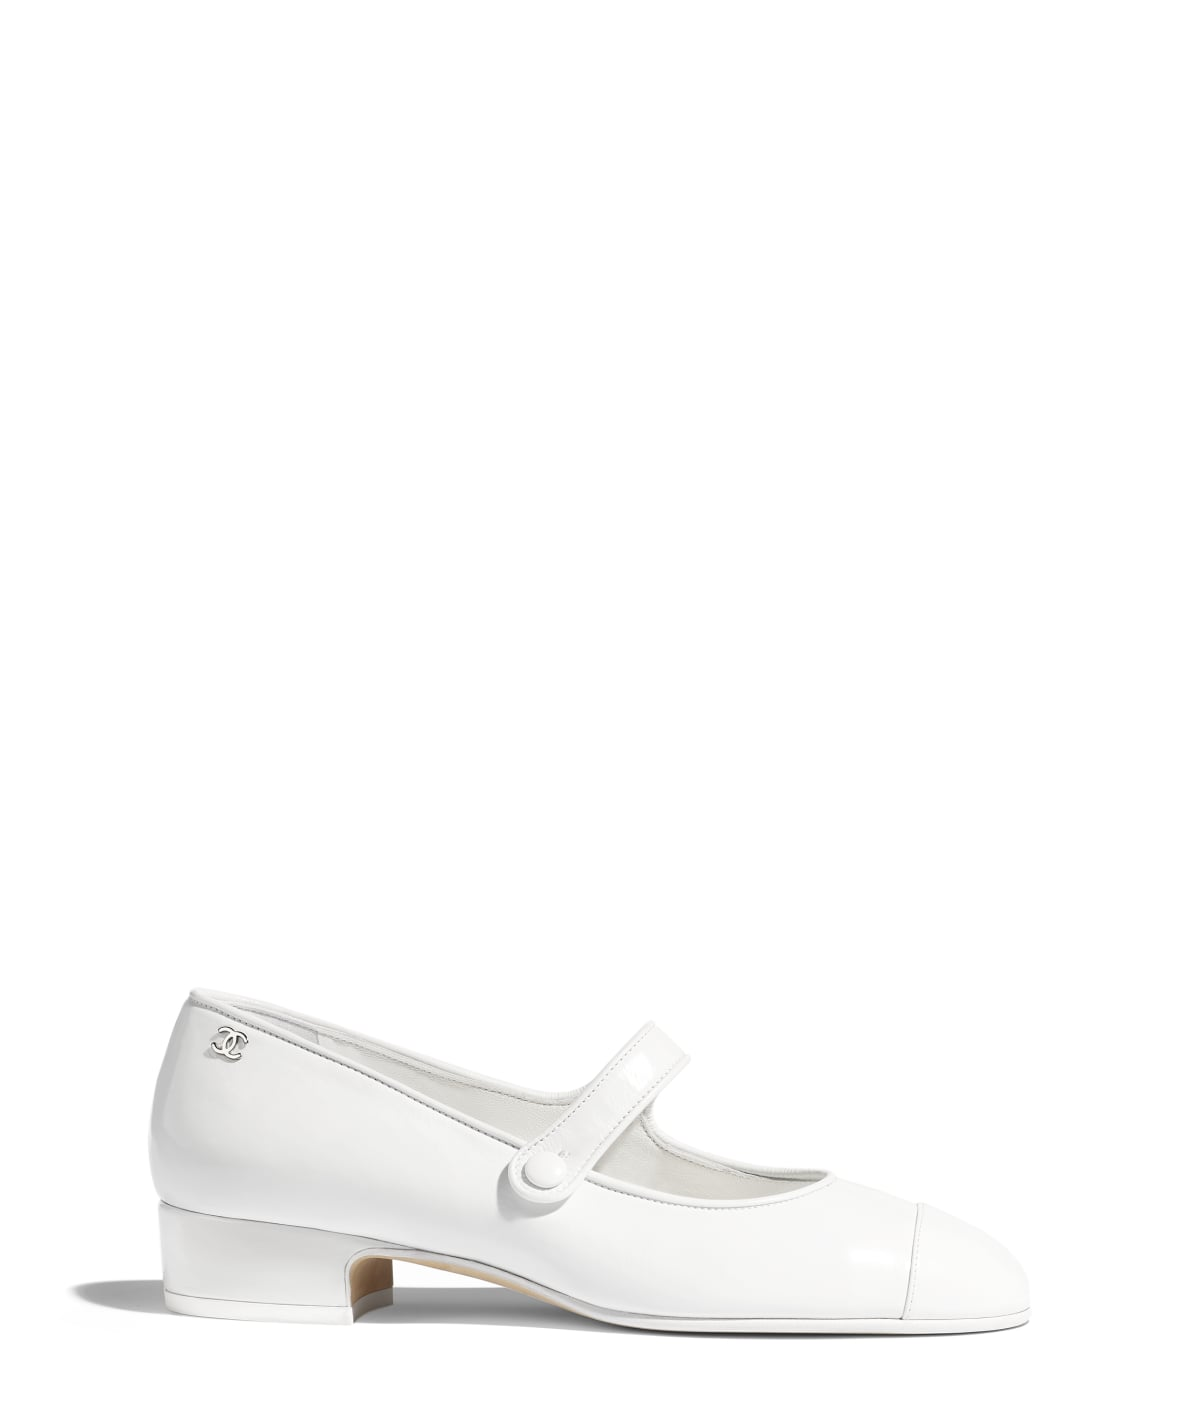 Mary Janes, calfskin., white. - CHANEL